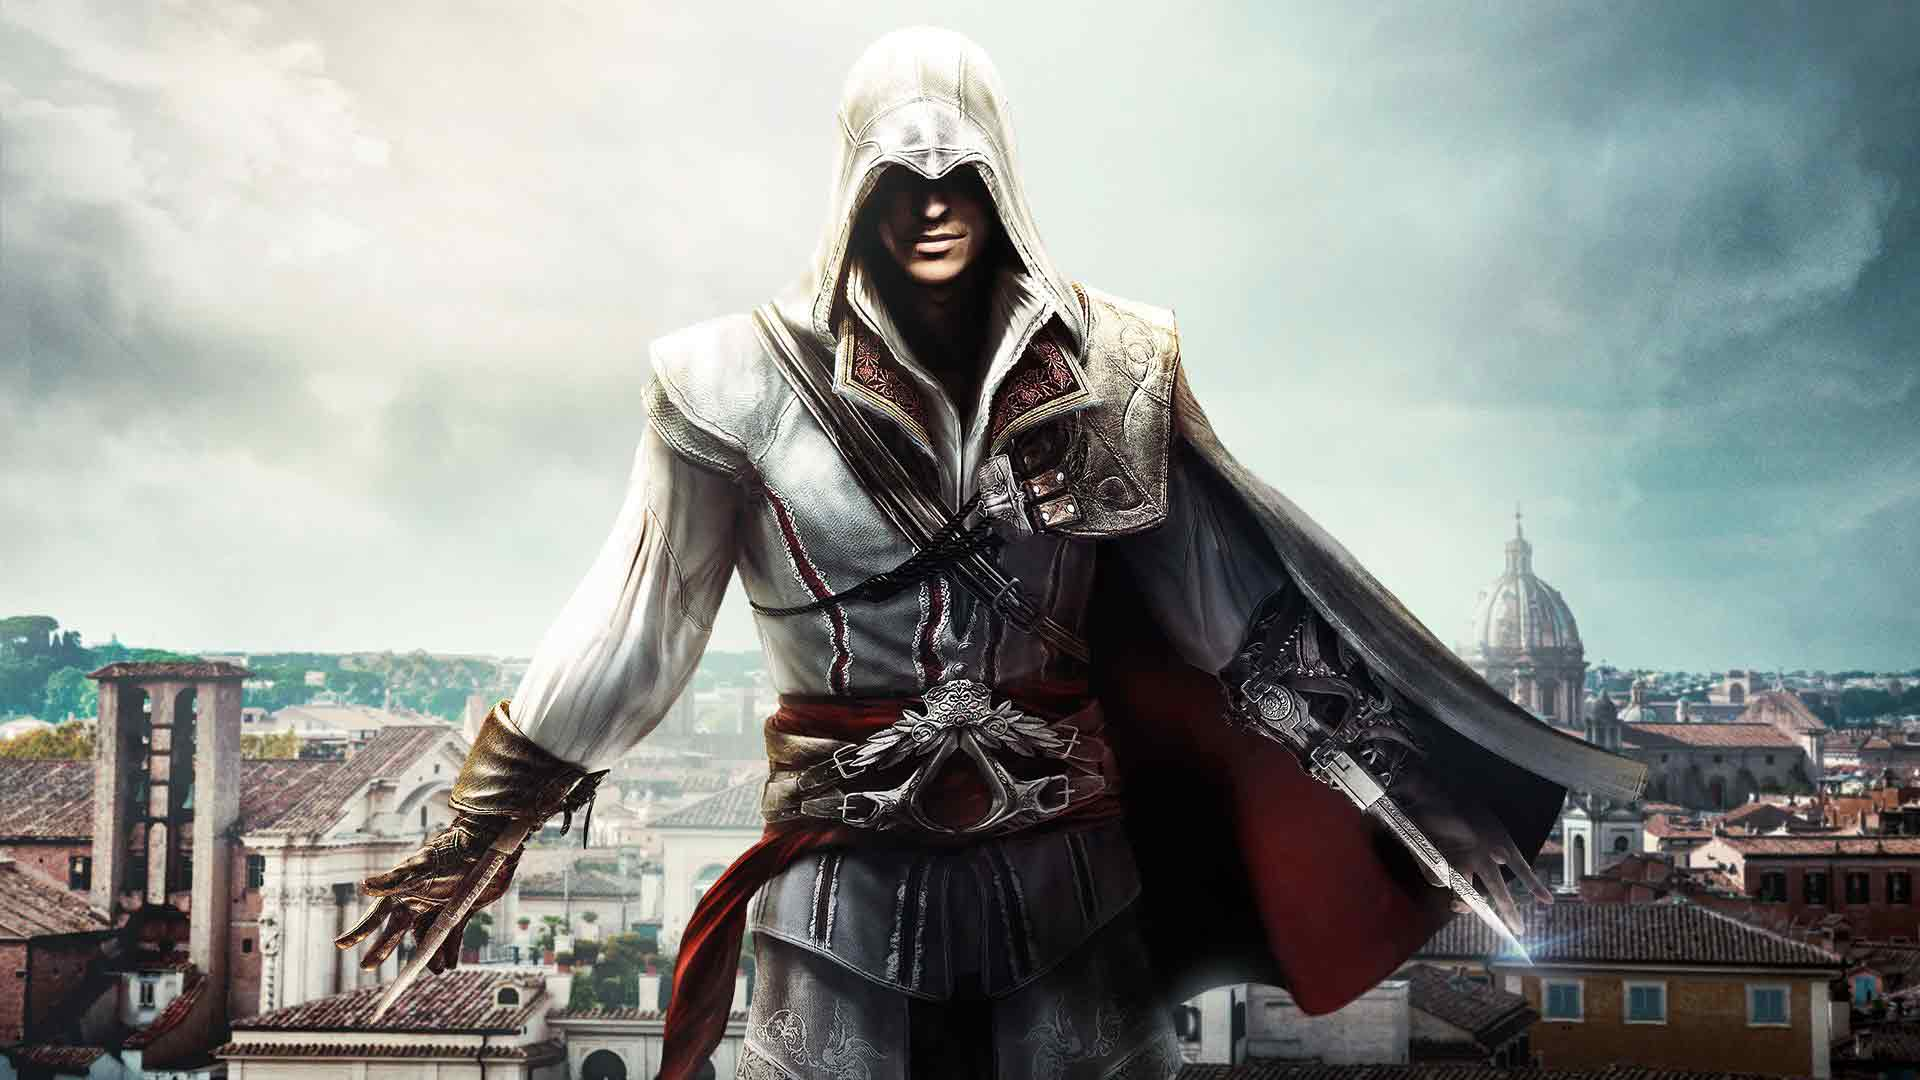 Ghost of Tsushima , Sekiro Shadows Die Twice , Assassin's Creed: Kingdom , Assassin's Creed , Ubisoft , نسخه جدید بازی Assassin's Creed , تاریخ انتشار بازی Assassin's Creed